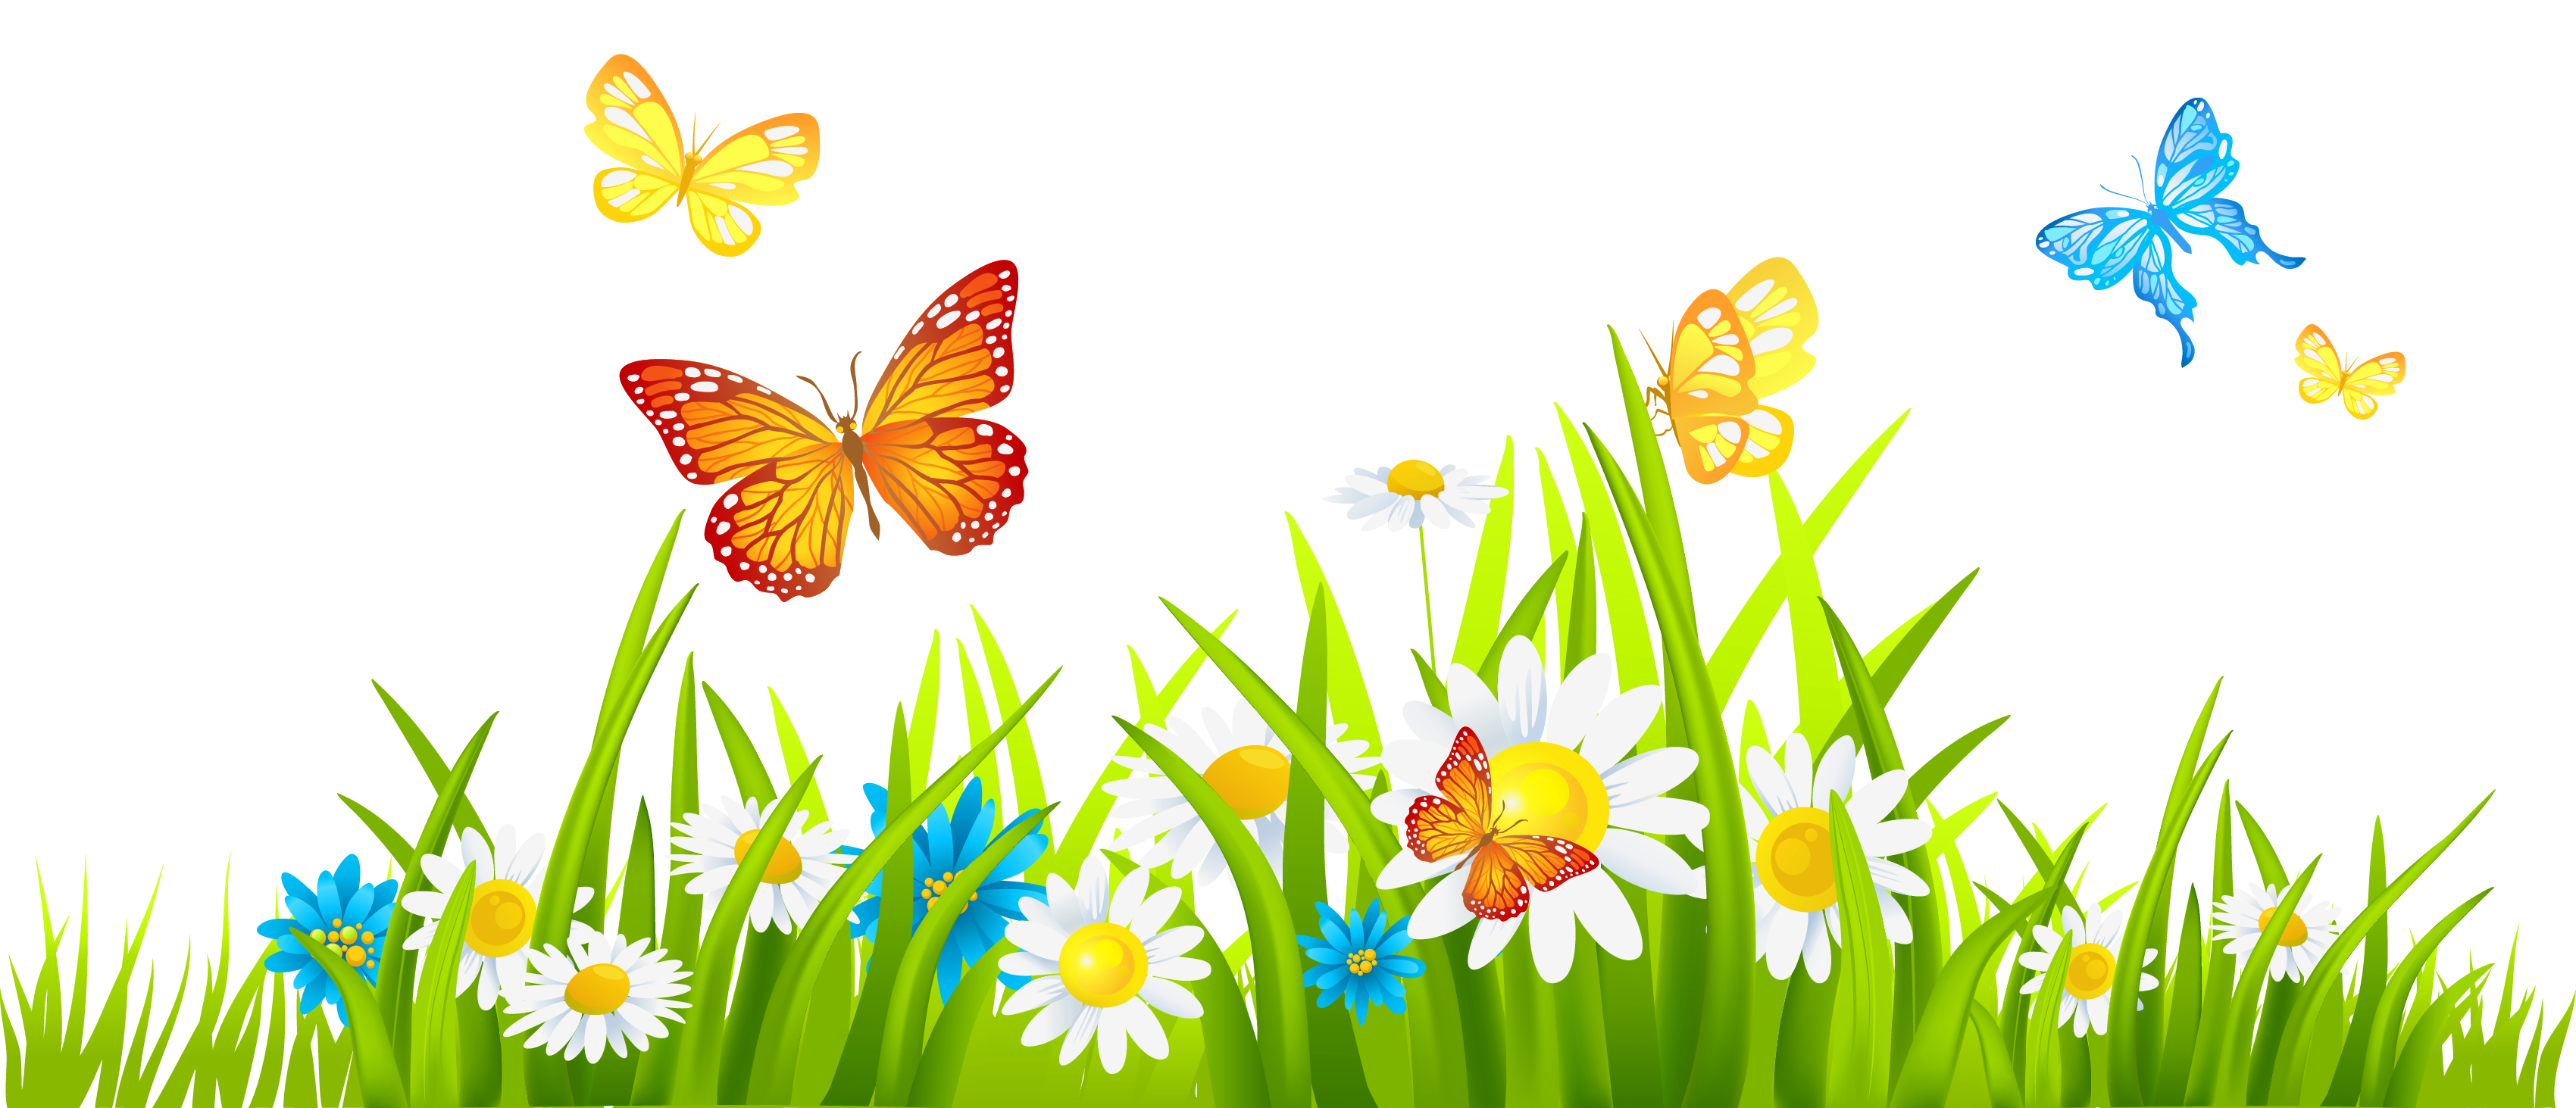 Grass-and-flowers-clip-art-free-clipart-images-clipartwiz